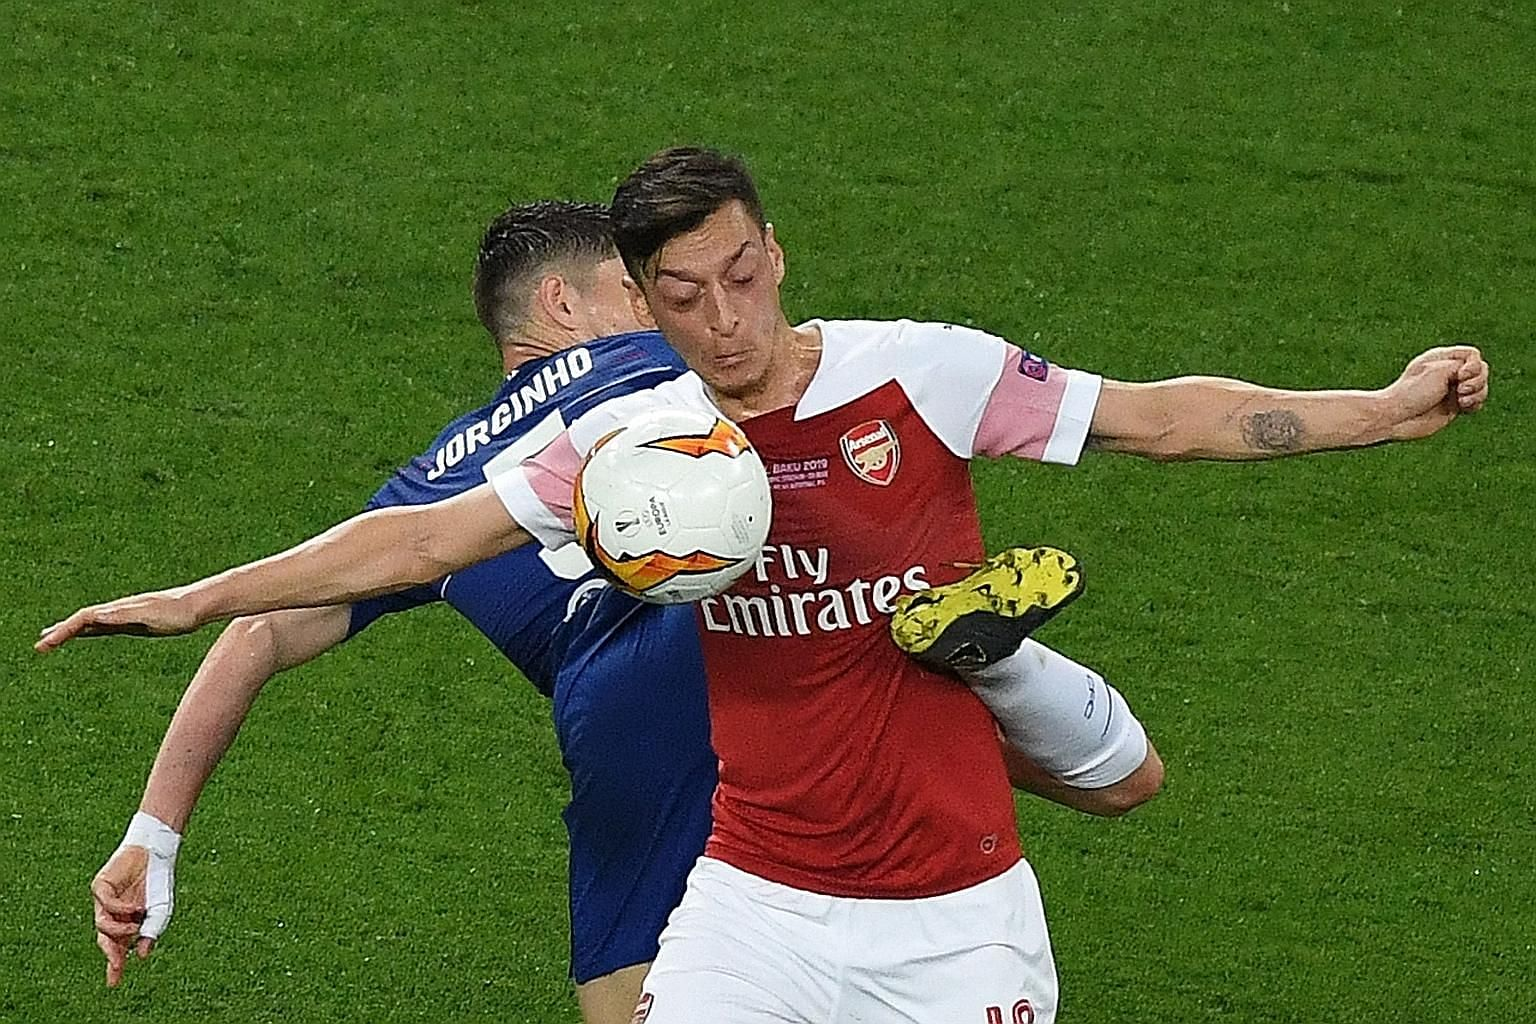 In this 4-1 Europa League final defeat by Chelsea on May 29, Mesut Ozil struggled to make an impact, as he did all season. Former Gunner Robert Pires is urging Arsenal fans to be patient with the enigmatic playmaker, who can help his own cause by sco